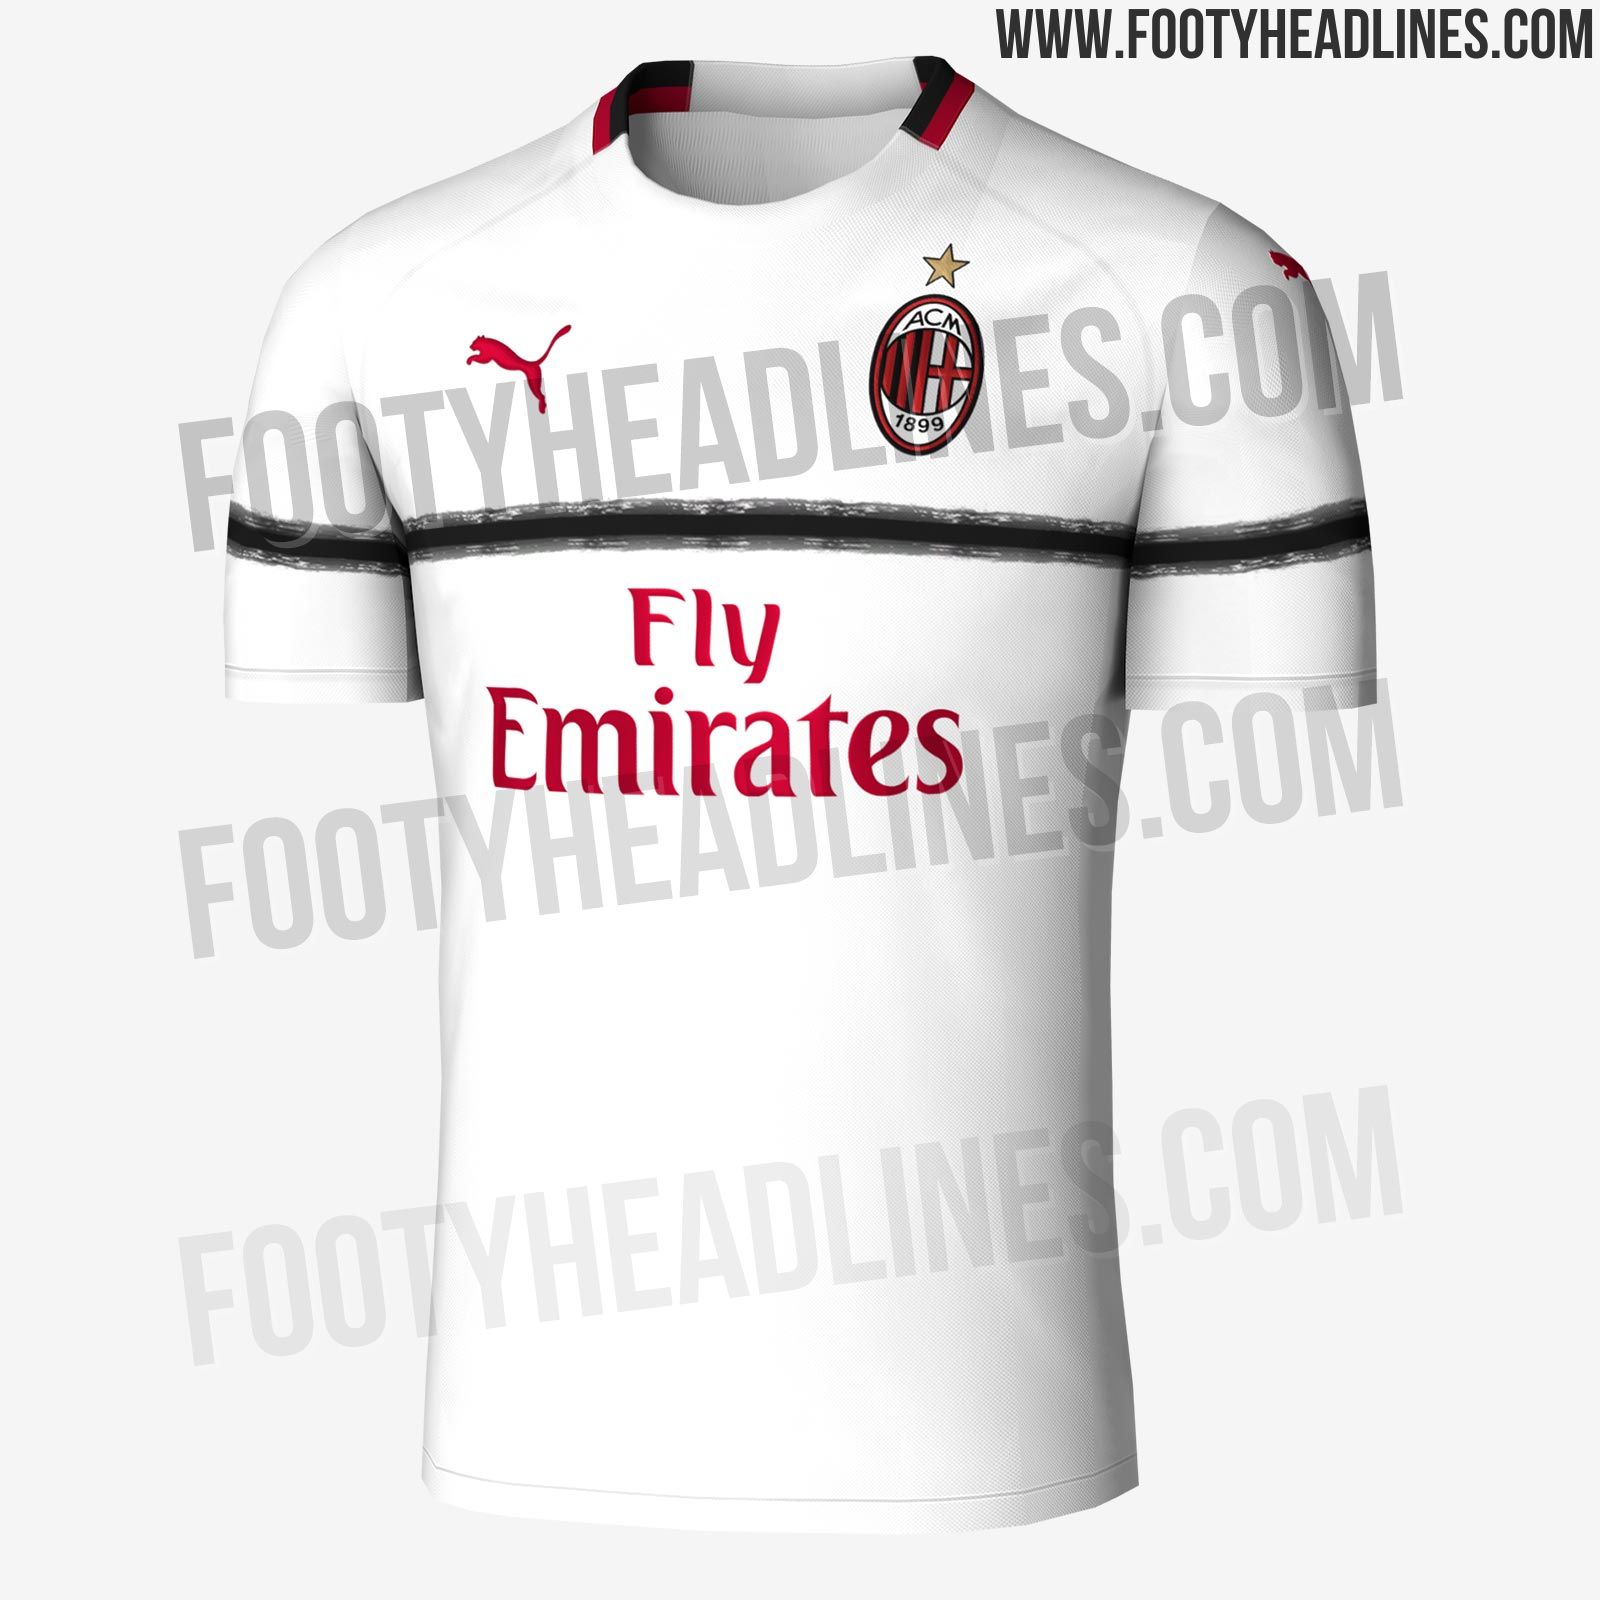 milan-18-19-away-kit-2.jpg